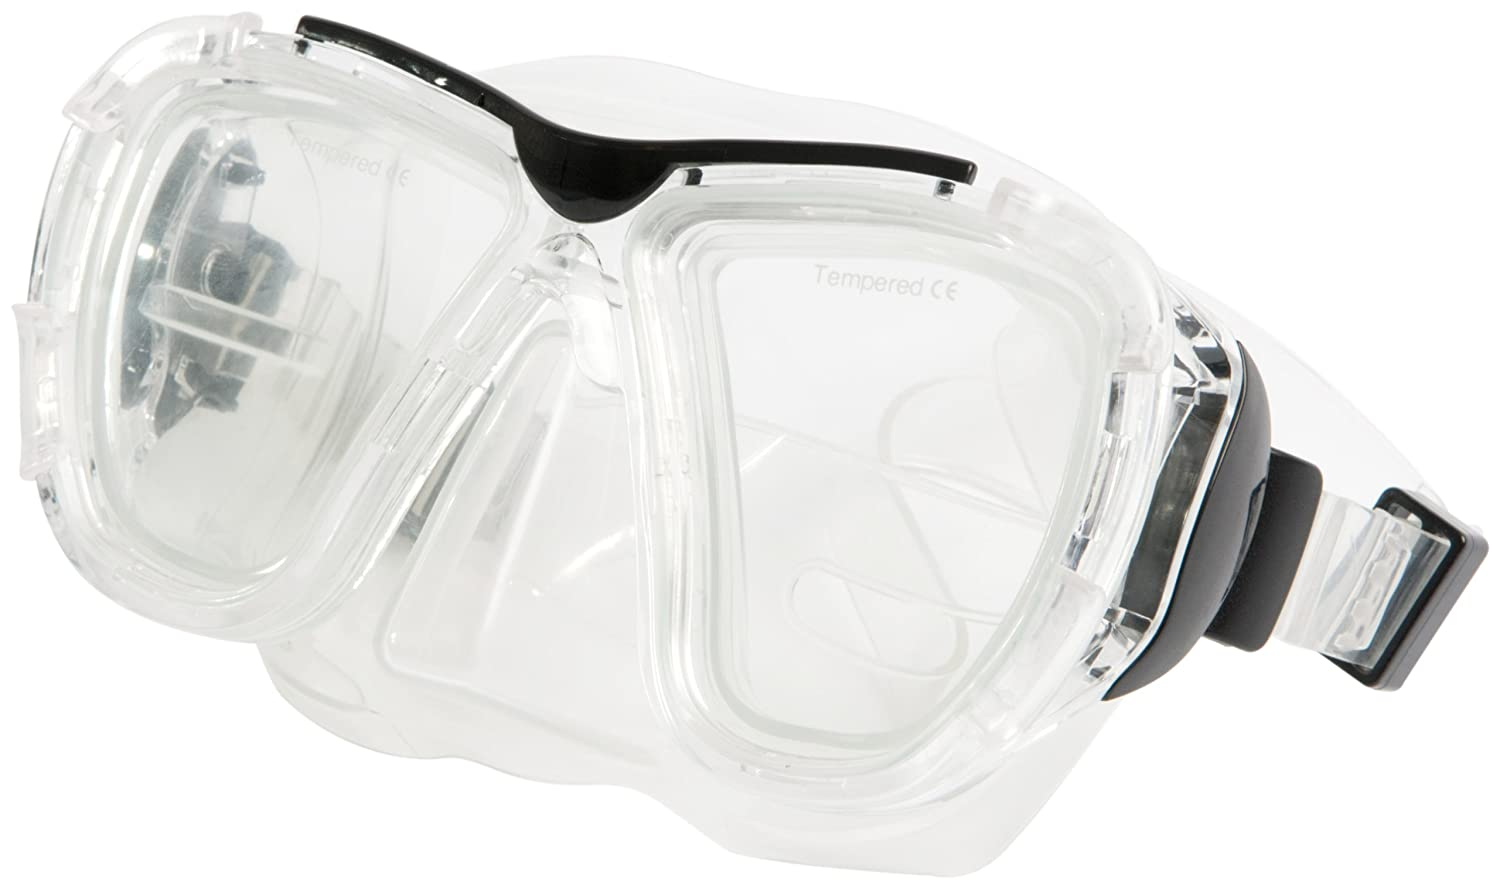 National Geographic Snorkeler Tuna 1S Experience Mask 11420303